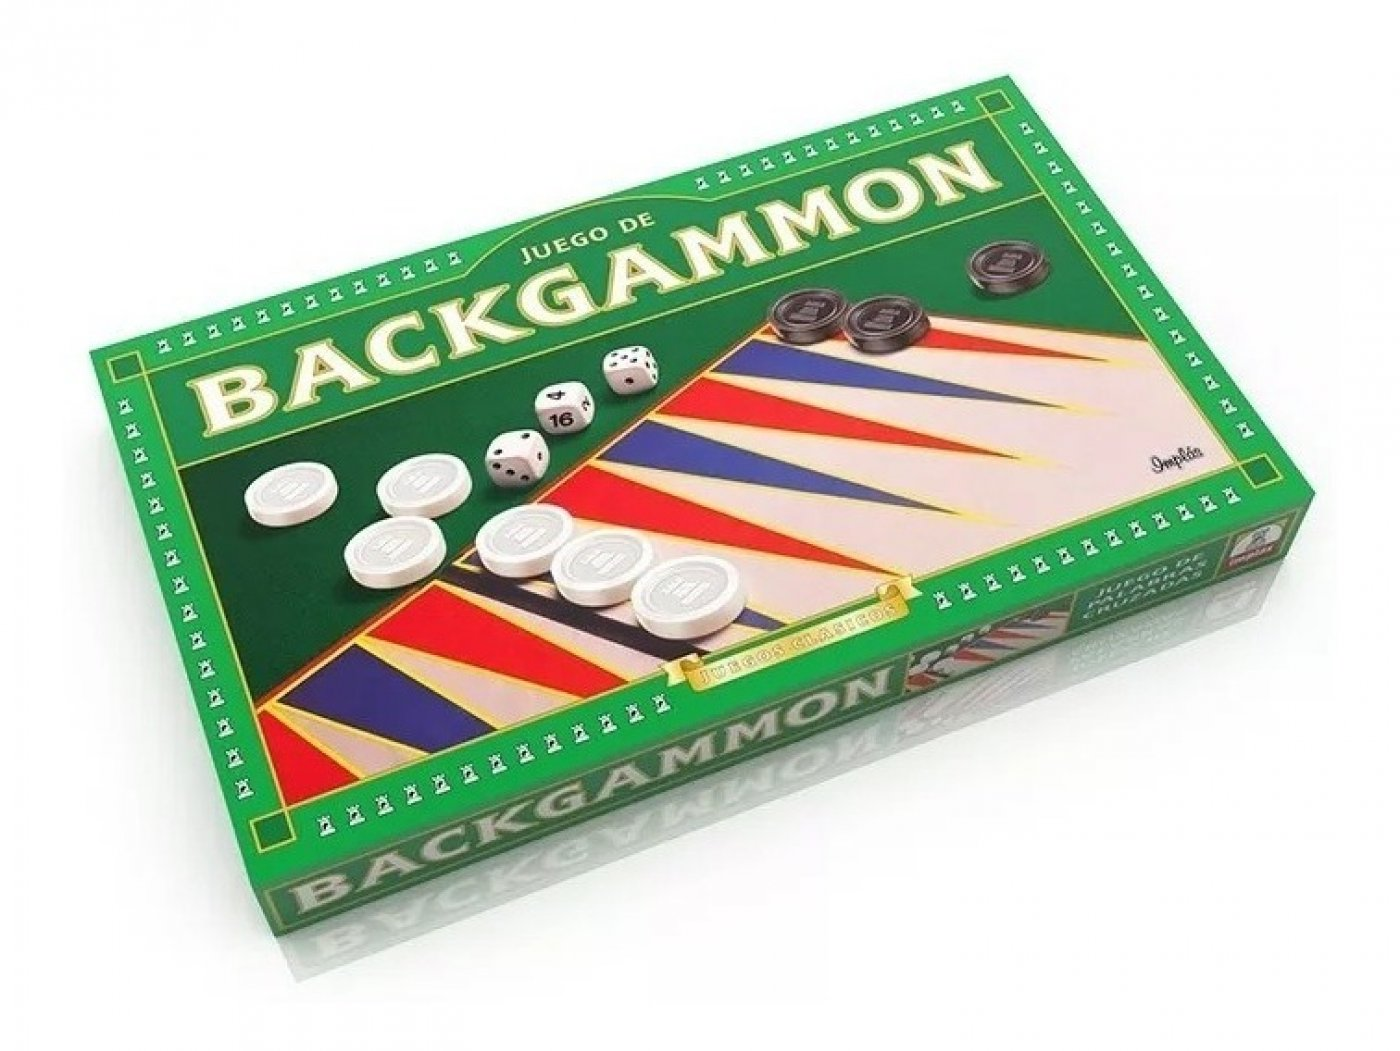 Backgammon de Implas